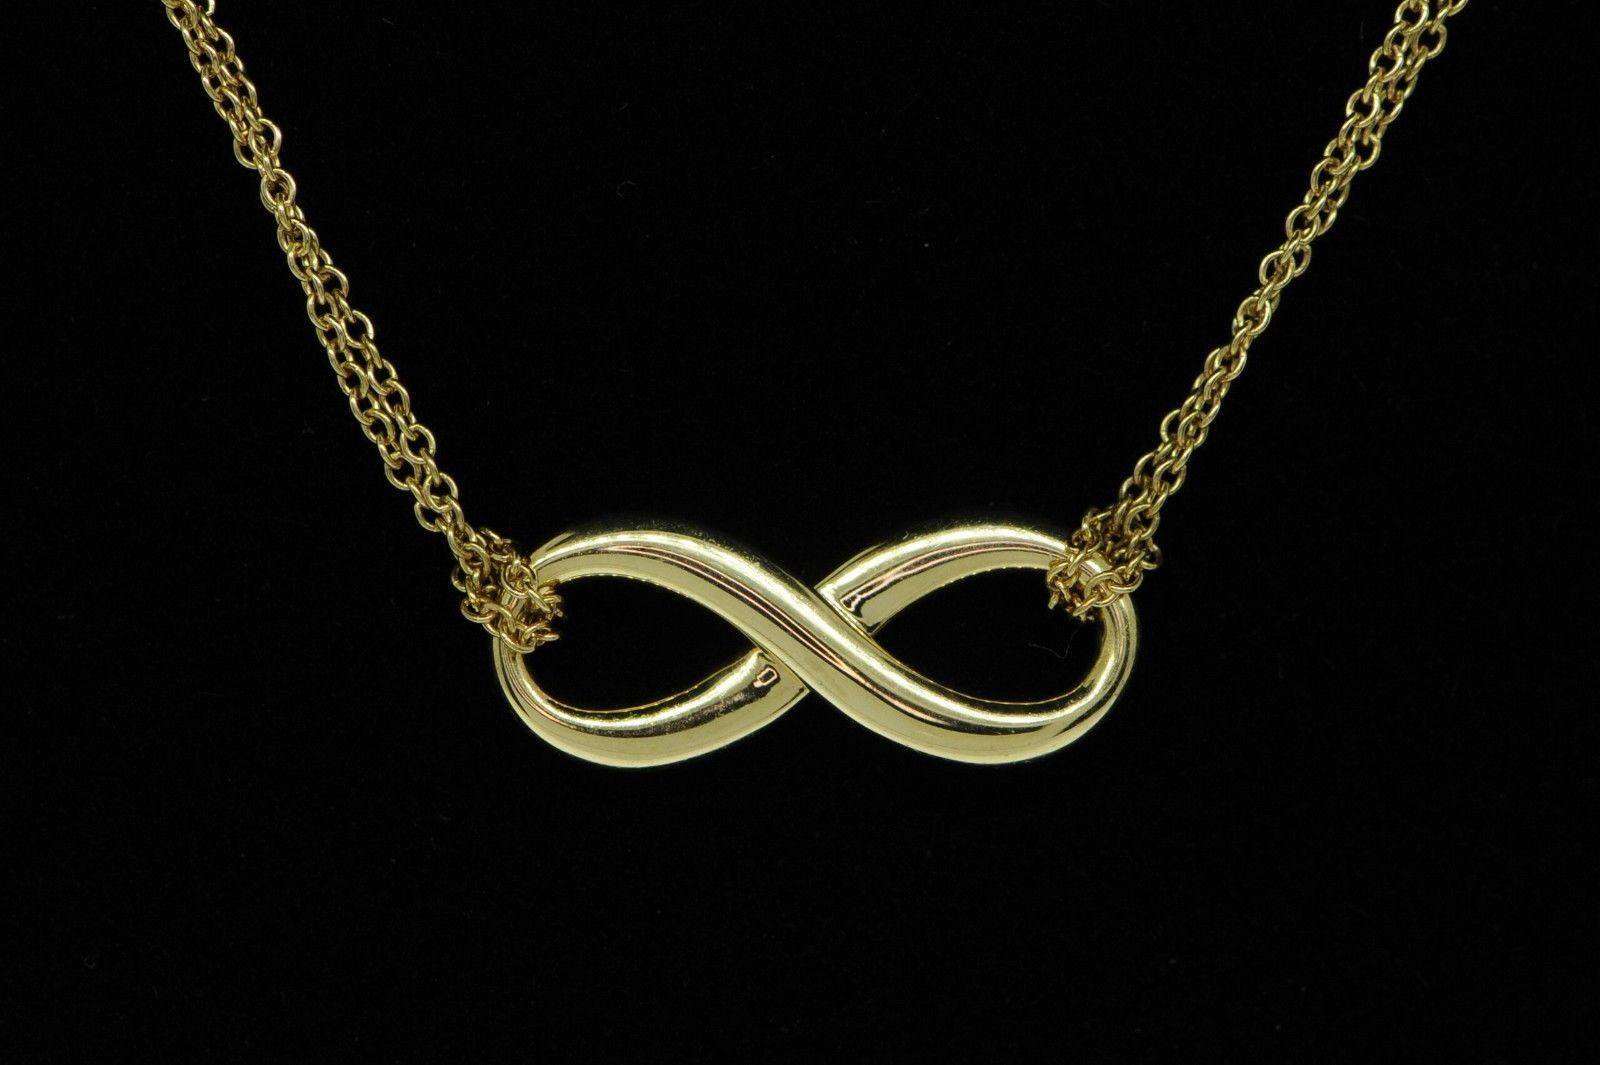 """TIFFANY & CO. 18K Yellow Gold Infinity Pendant on Double Chain (17"""" Retail $900)"""